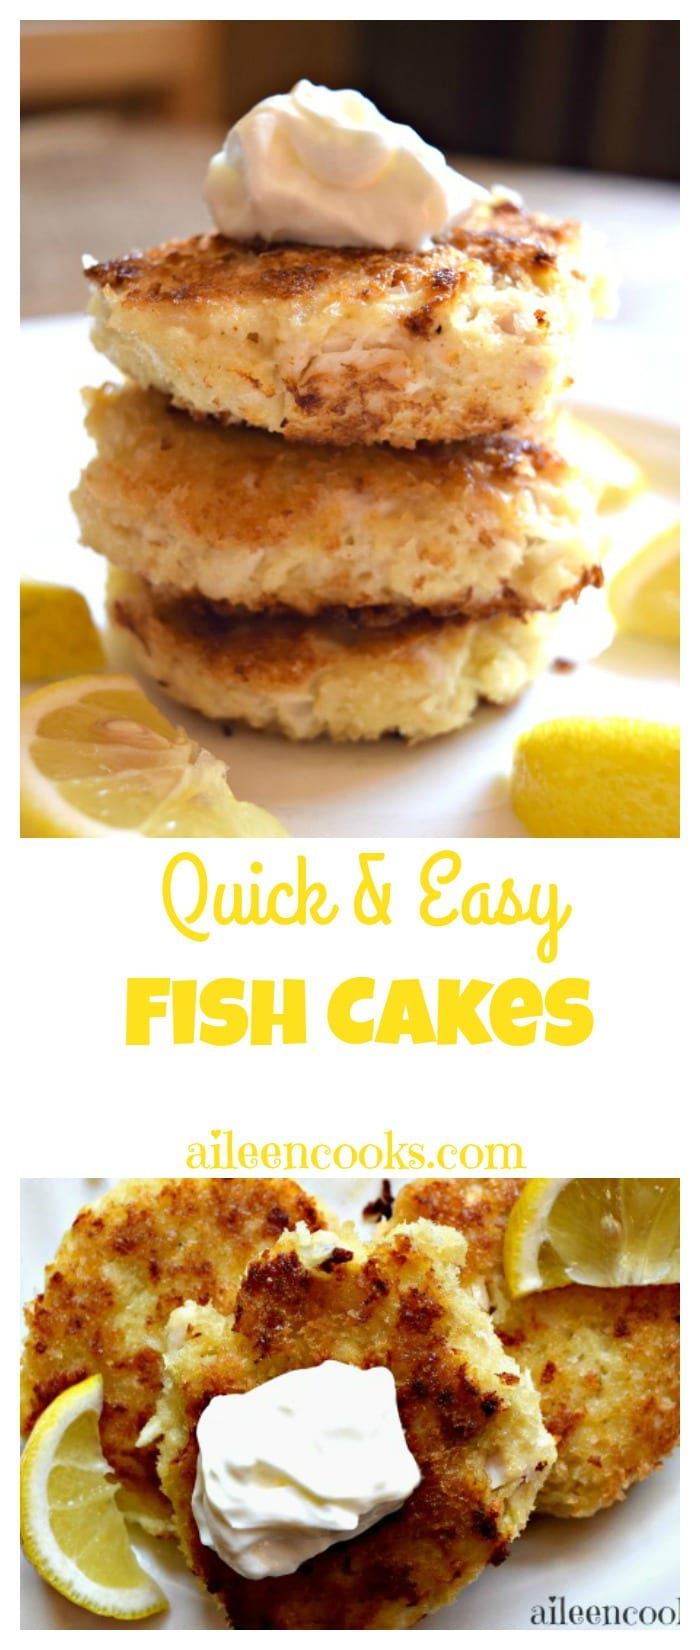 30 minute meal fish cakes aileen cooks for Freezing fish oil